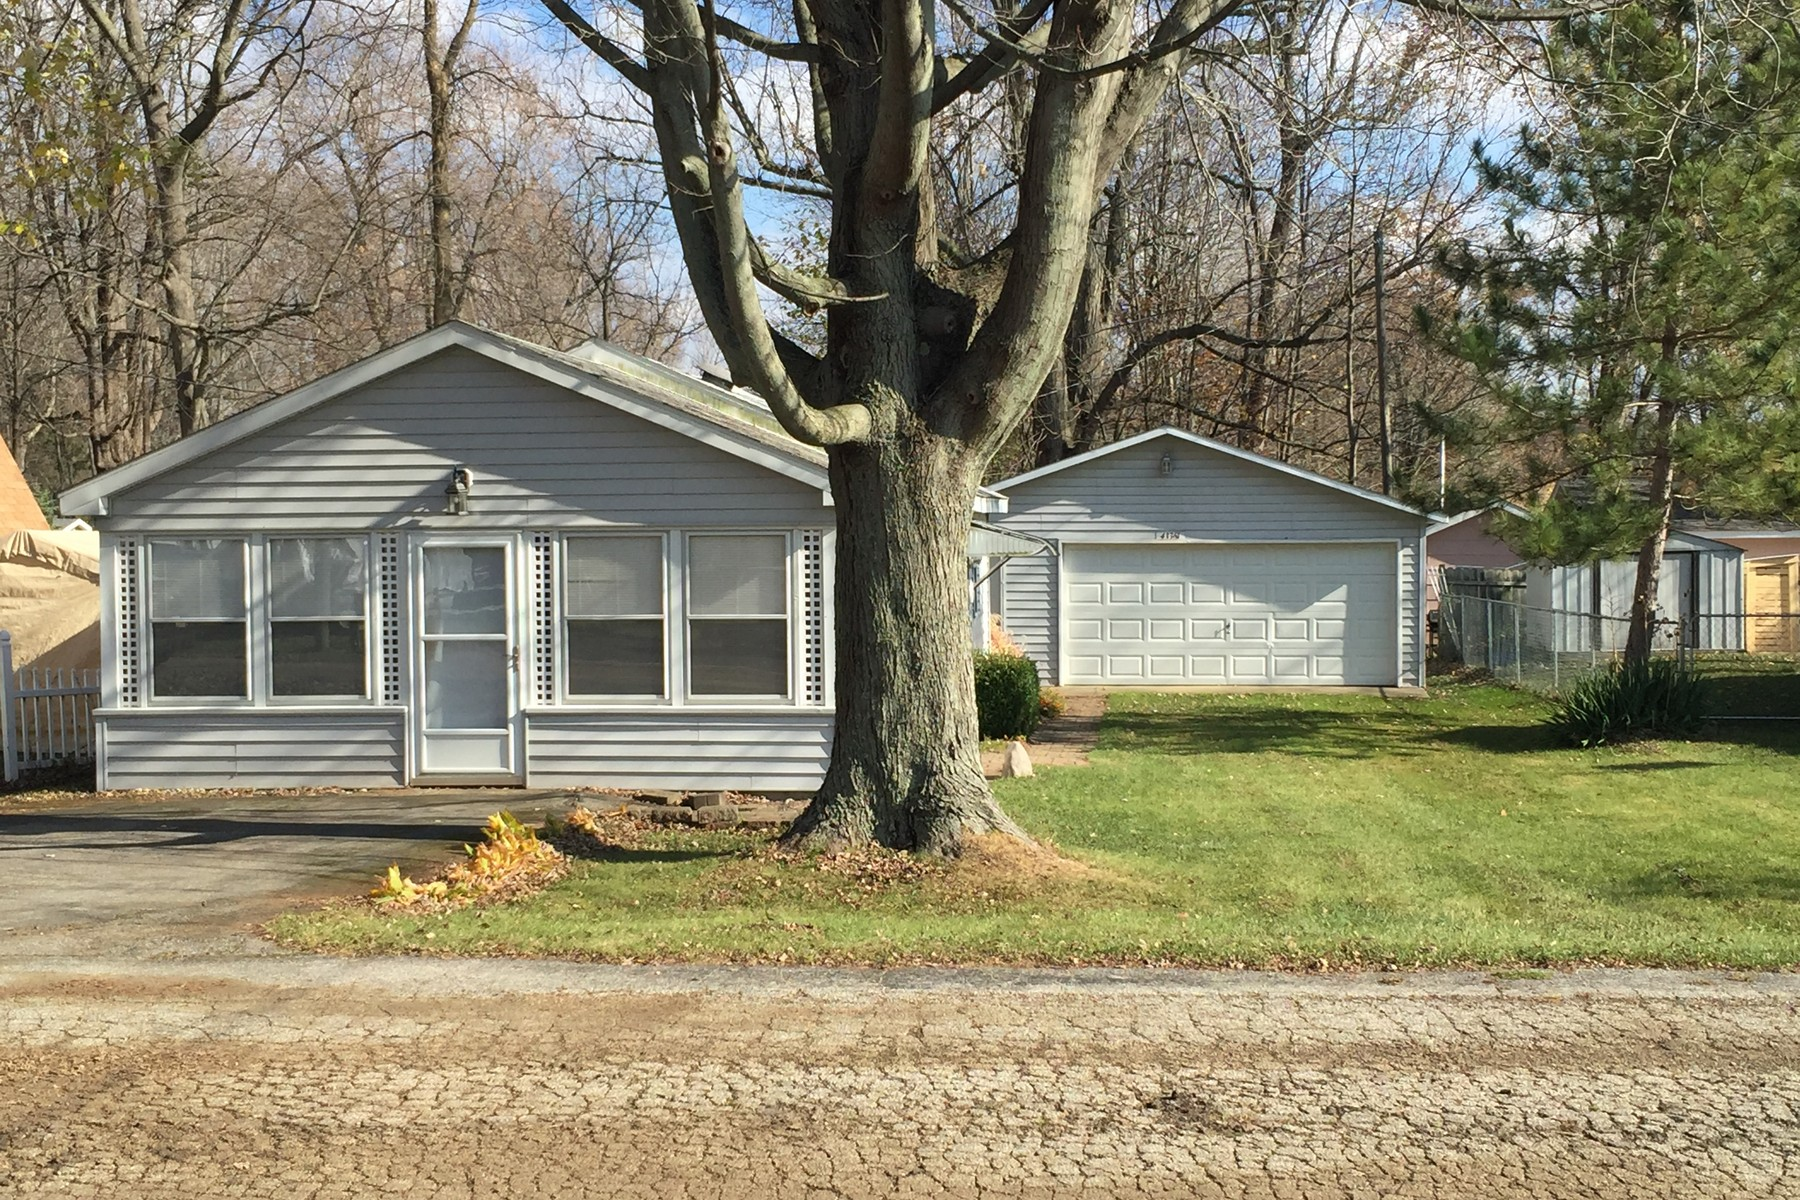 Single Family Home for Sale at Cute Cottage 43361 Van Auken Drive Bangor, Michigan, 49013 United States